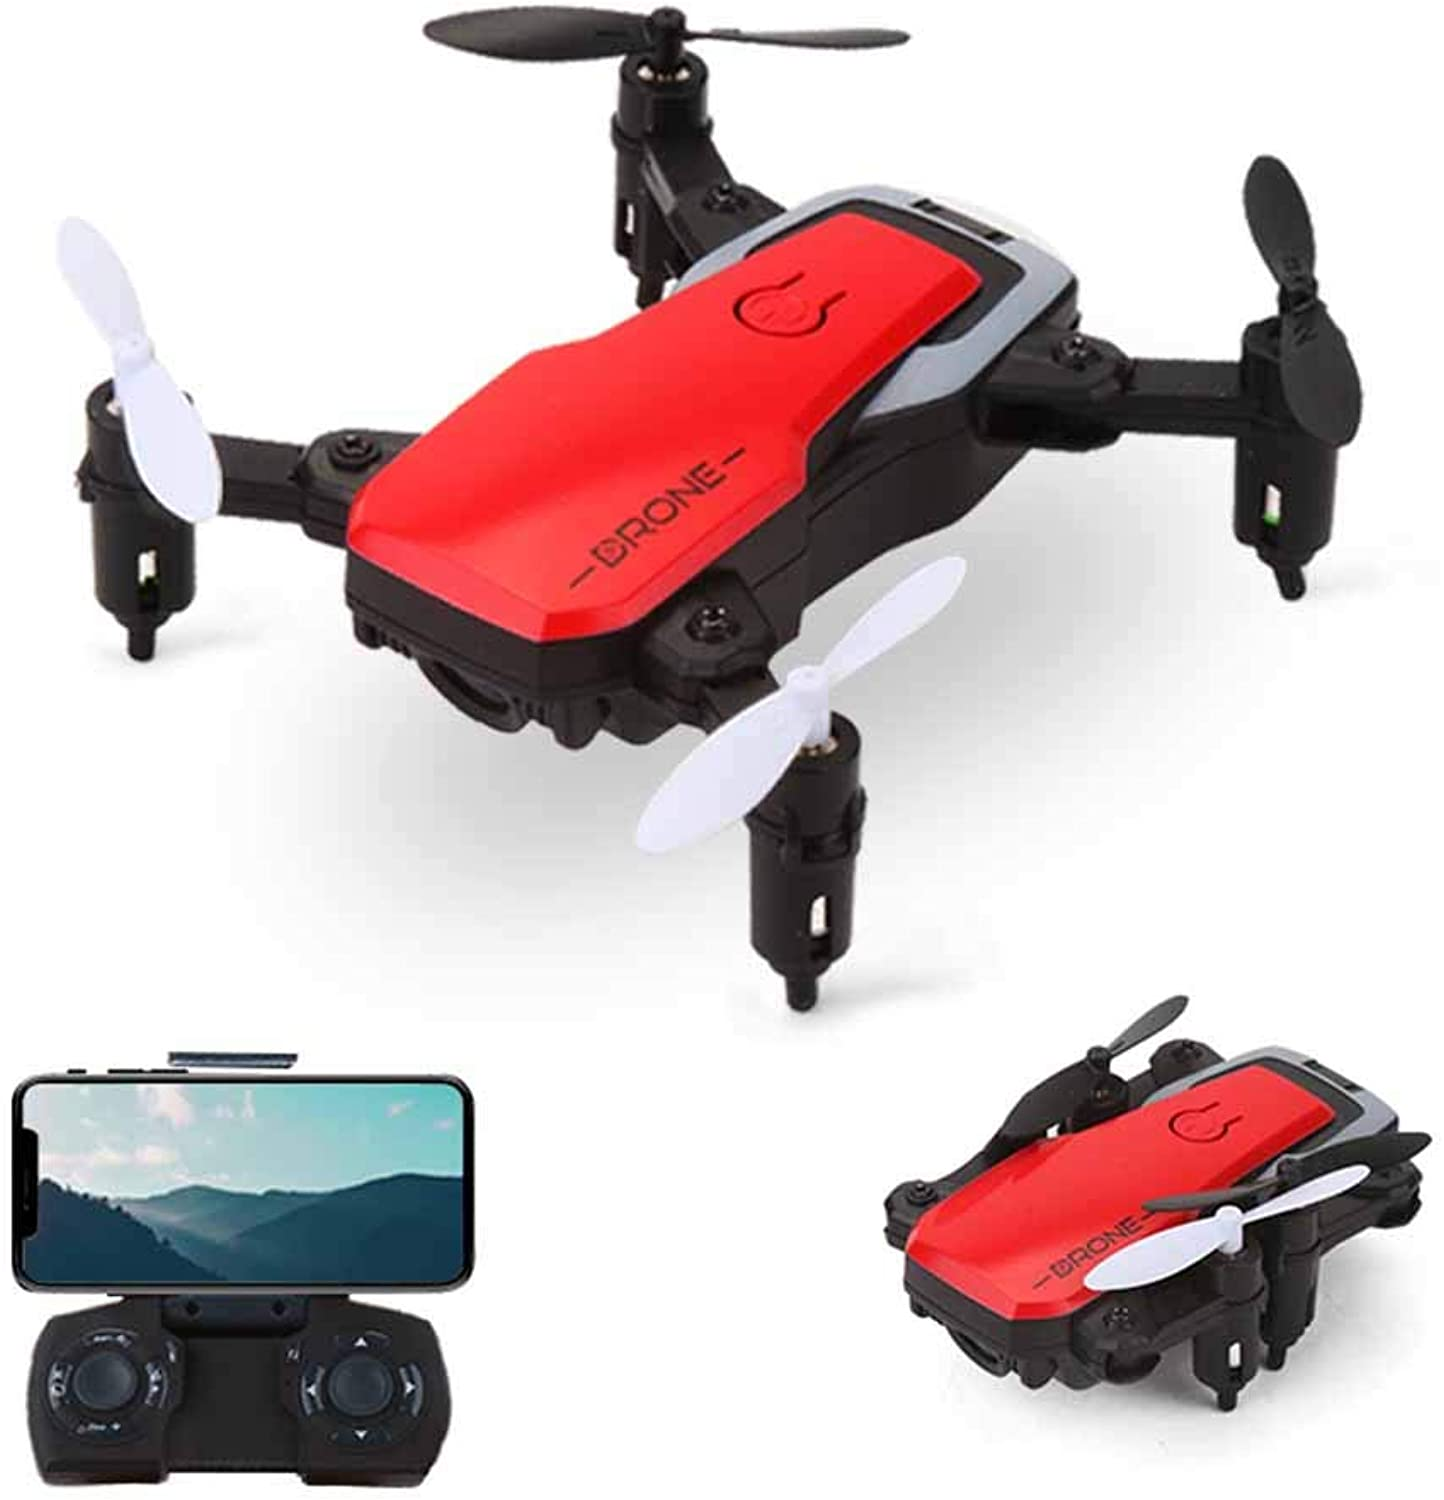 Ydq Drone With HD Camera, Wireless RC Quadcopter Drone With 120 Degree WideAngle 720P HD Camera Altitude Hold One Button Take Off Function